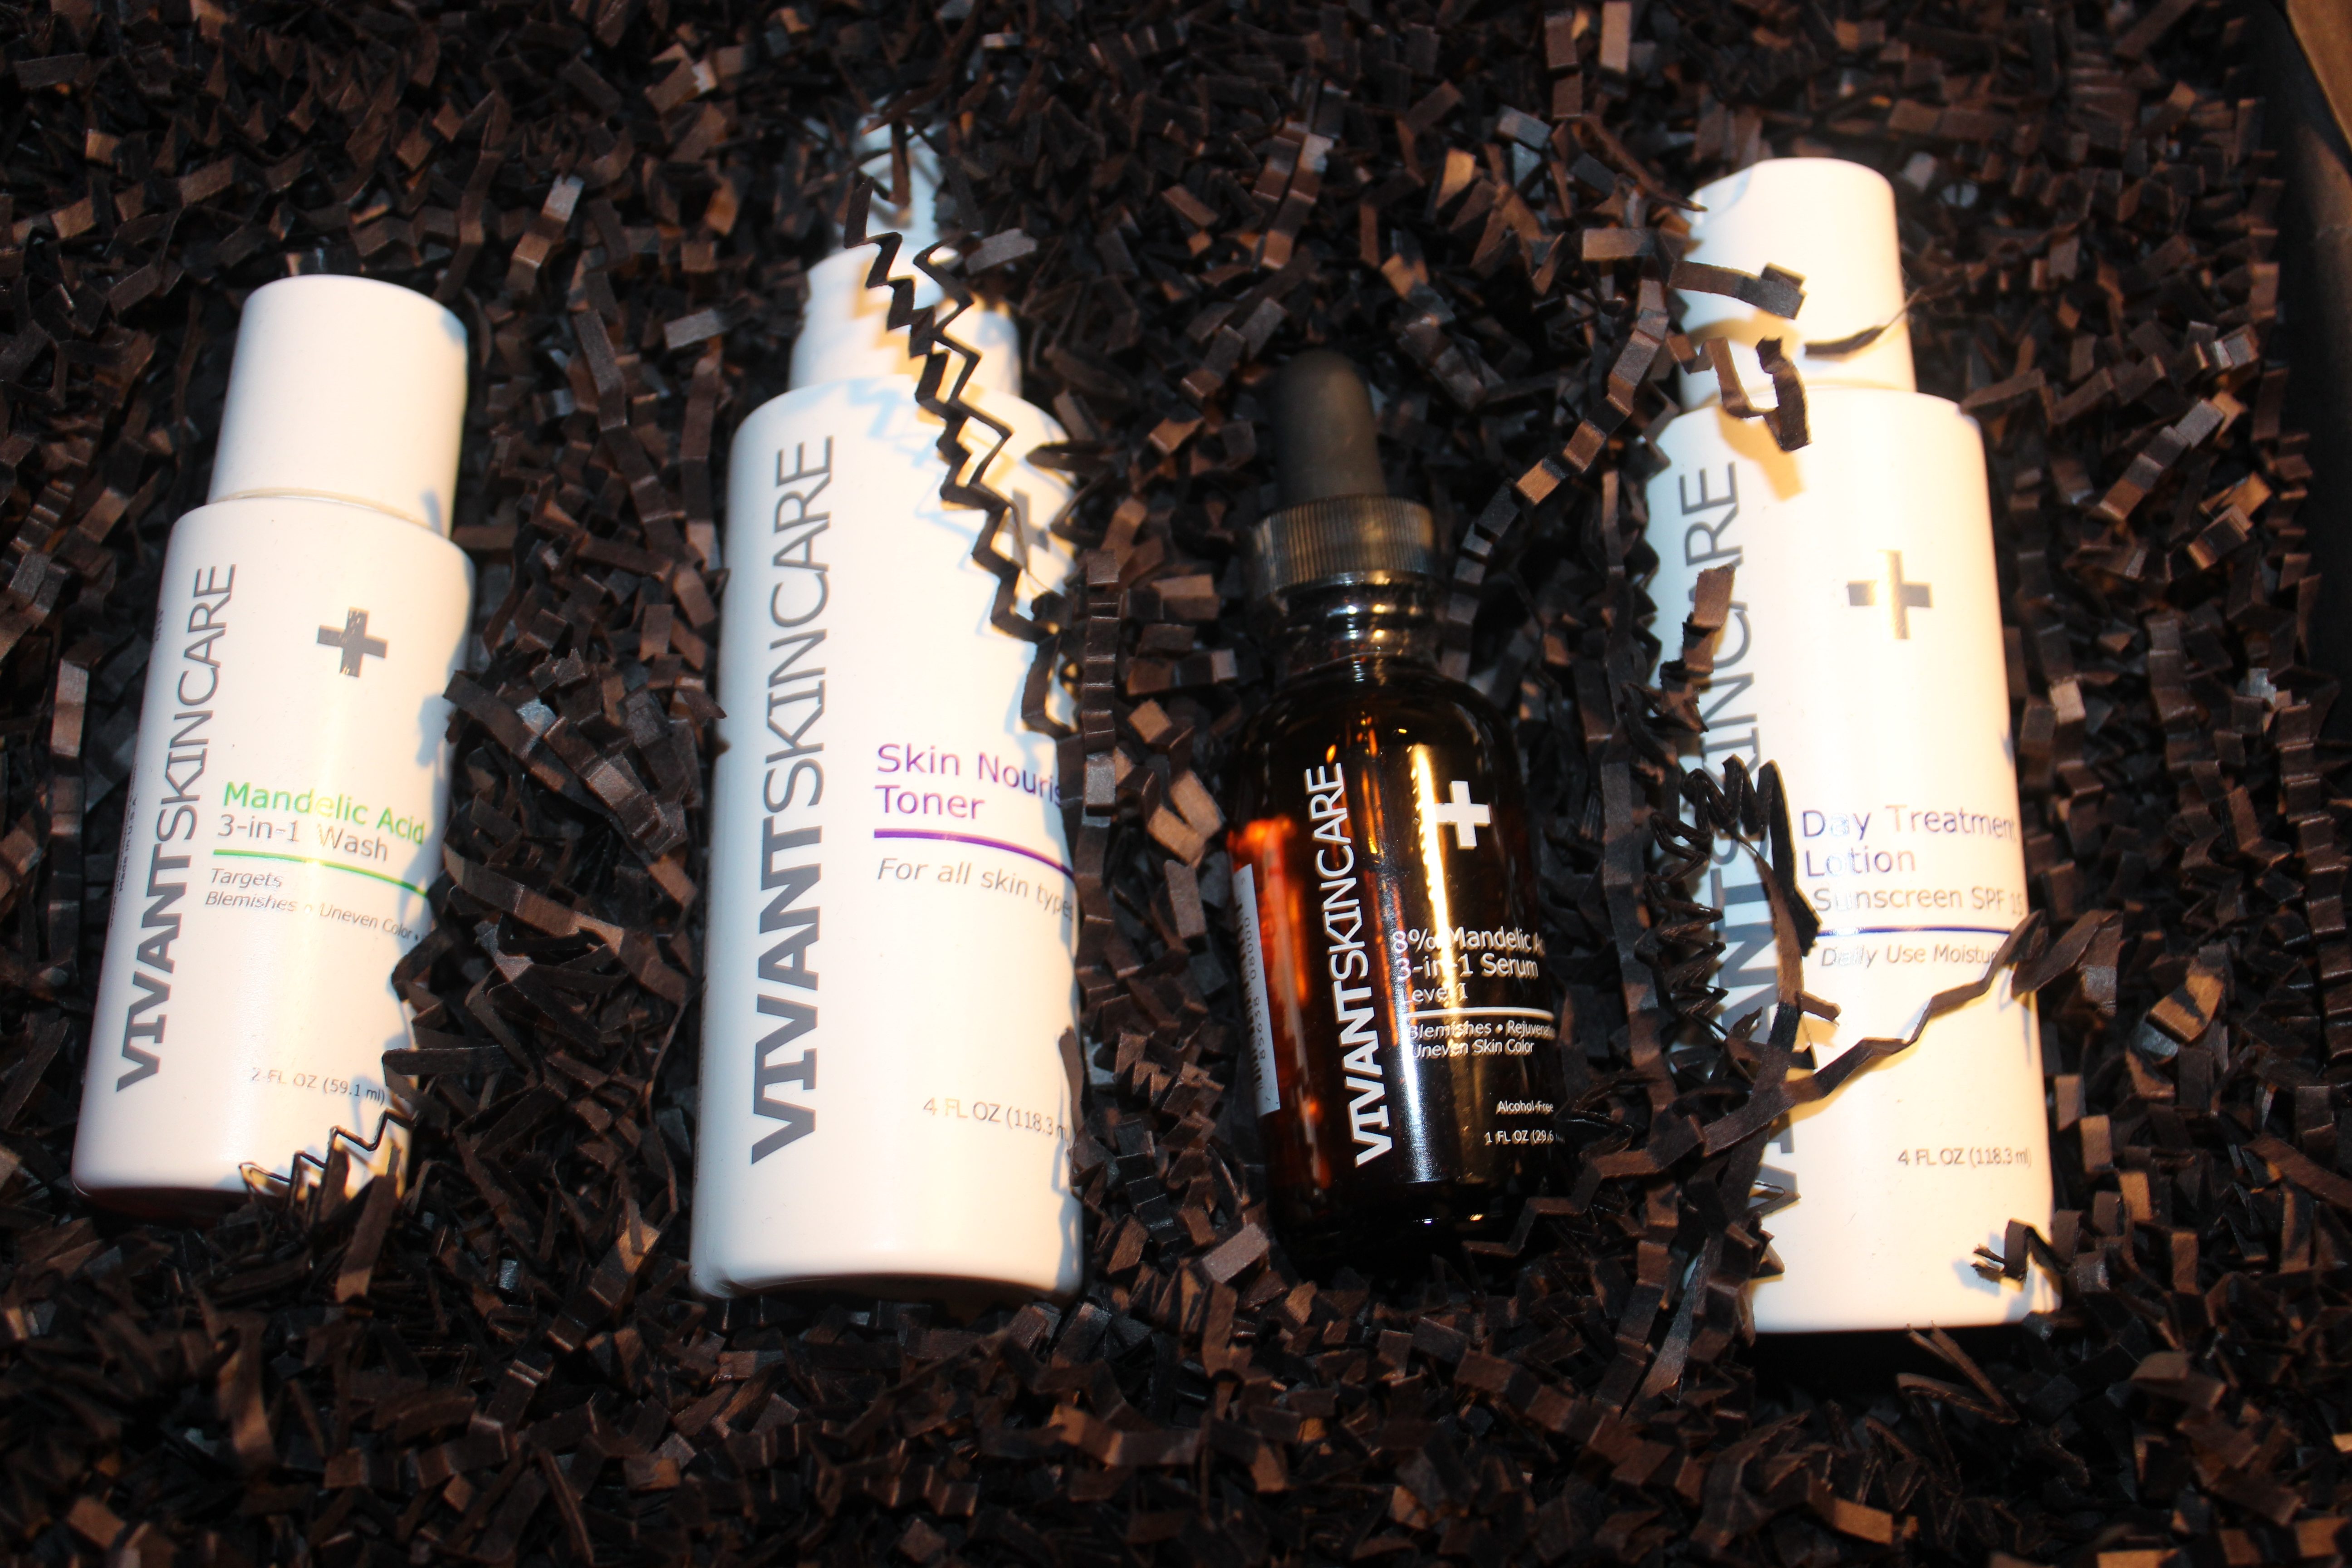 Get Gorgeous Skin from Vivant Skin Care